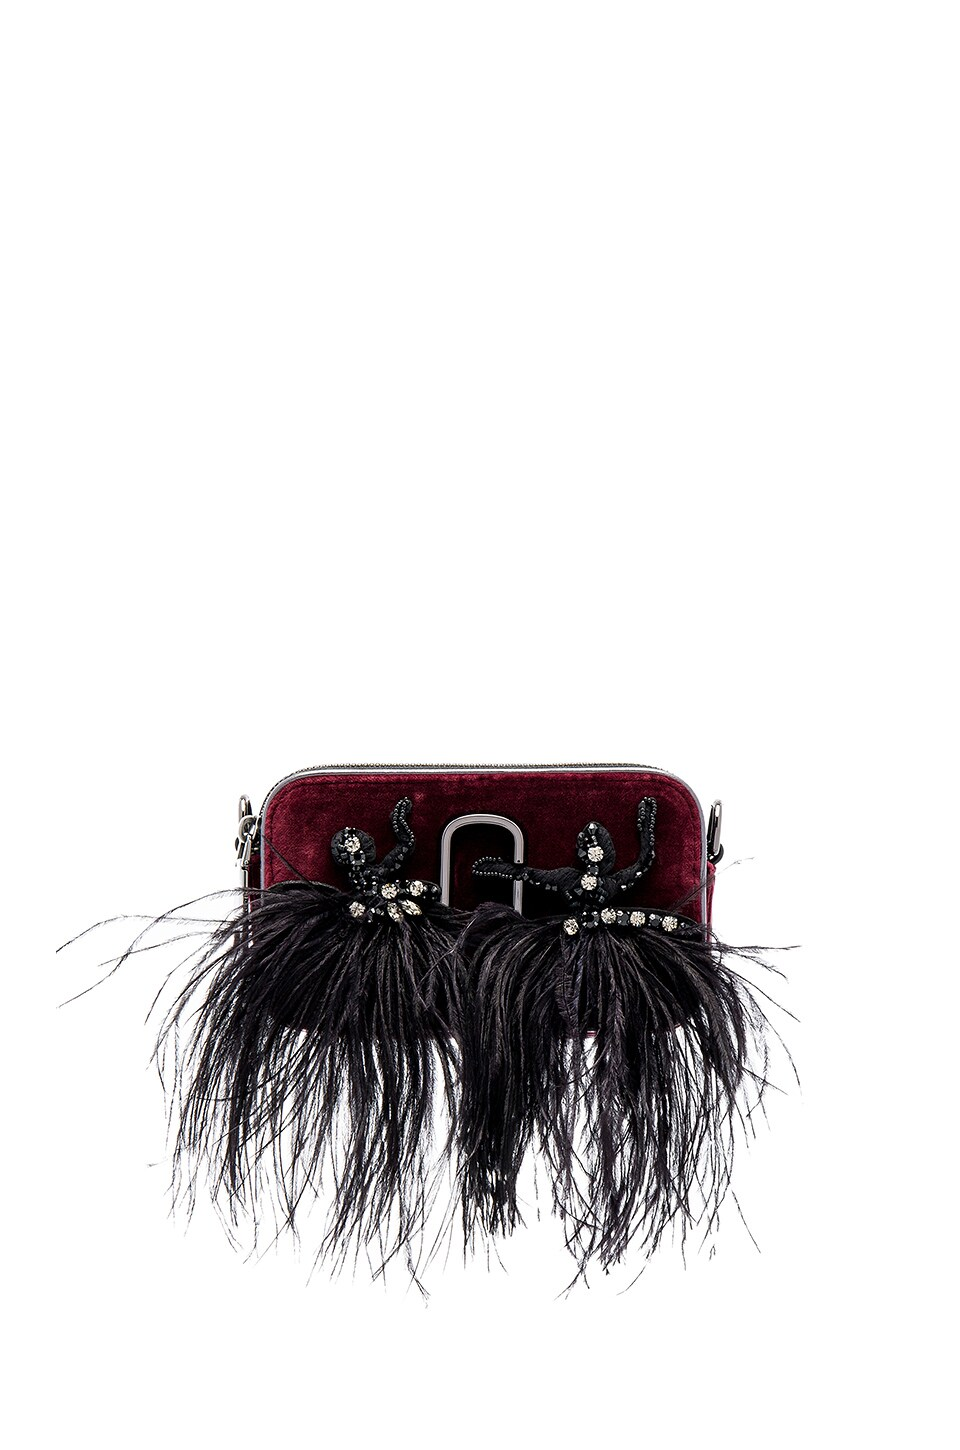 Marc Jacobs Snapshot Velvet Small Camera Bag in Bordeaux